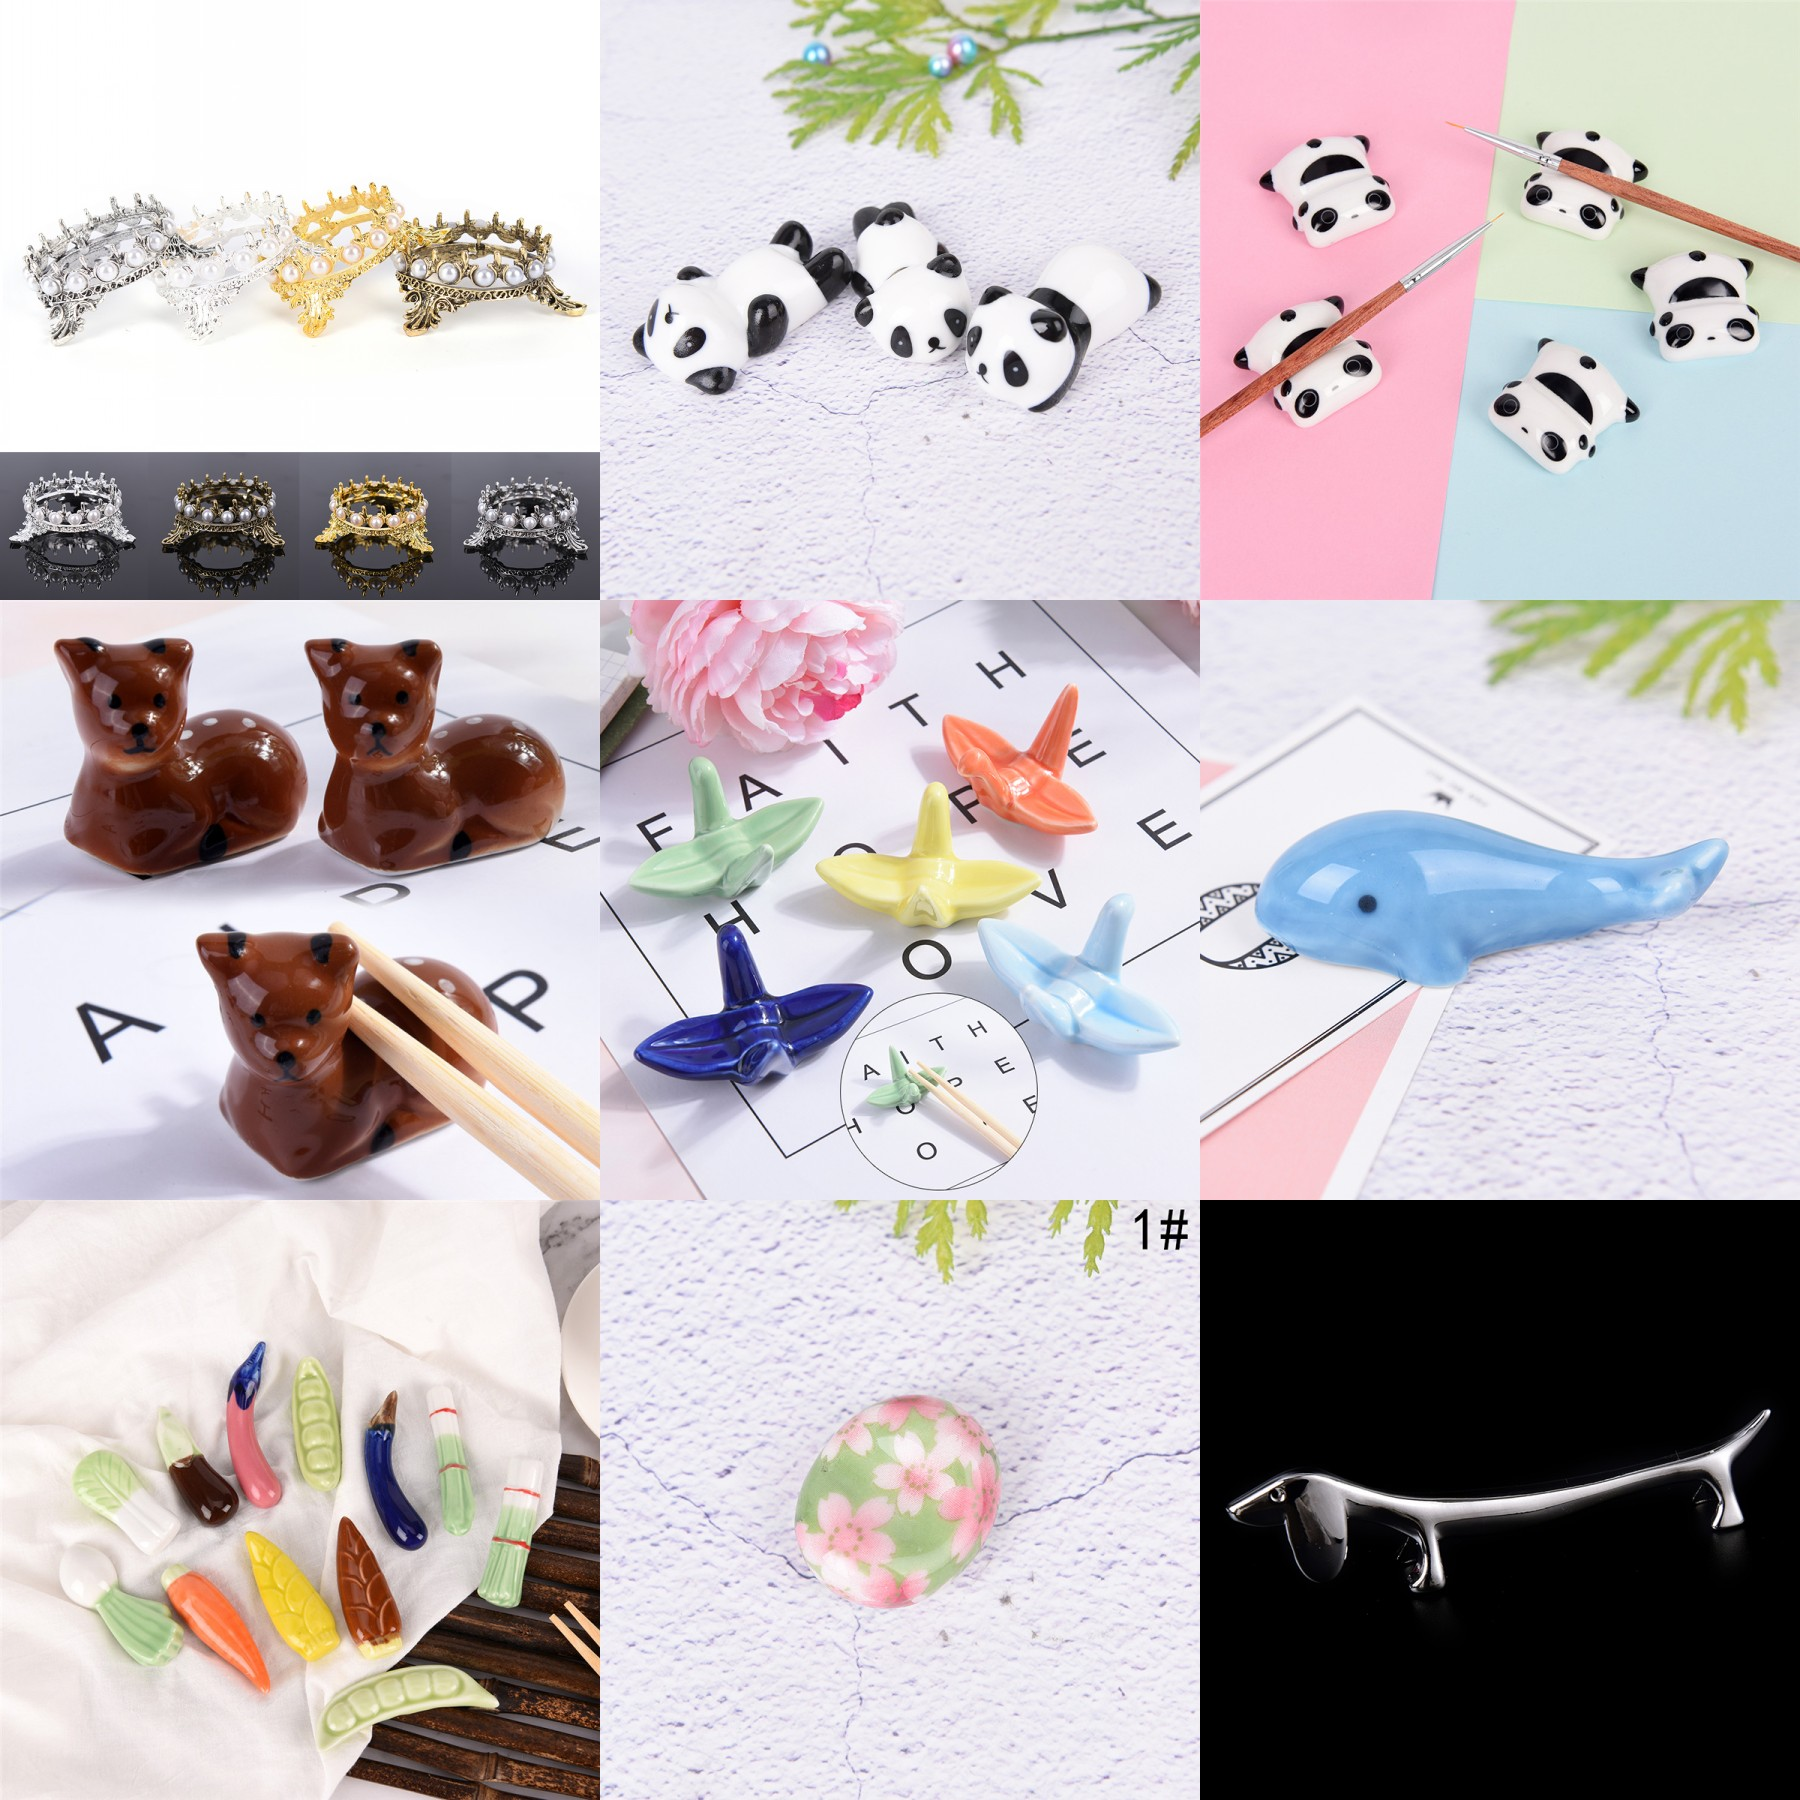 Crown Pearls Dog Cat Fruit Pencil Pens Brushs Stand Rack Decor Salon Home DIY Manicure Nail Carving Drawing Pens Brushes Holder